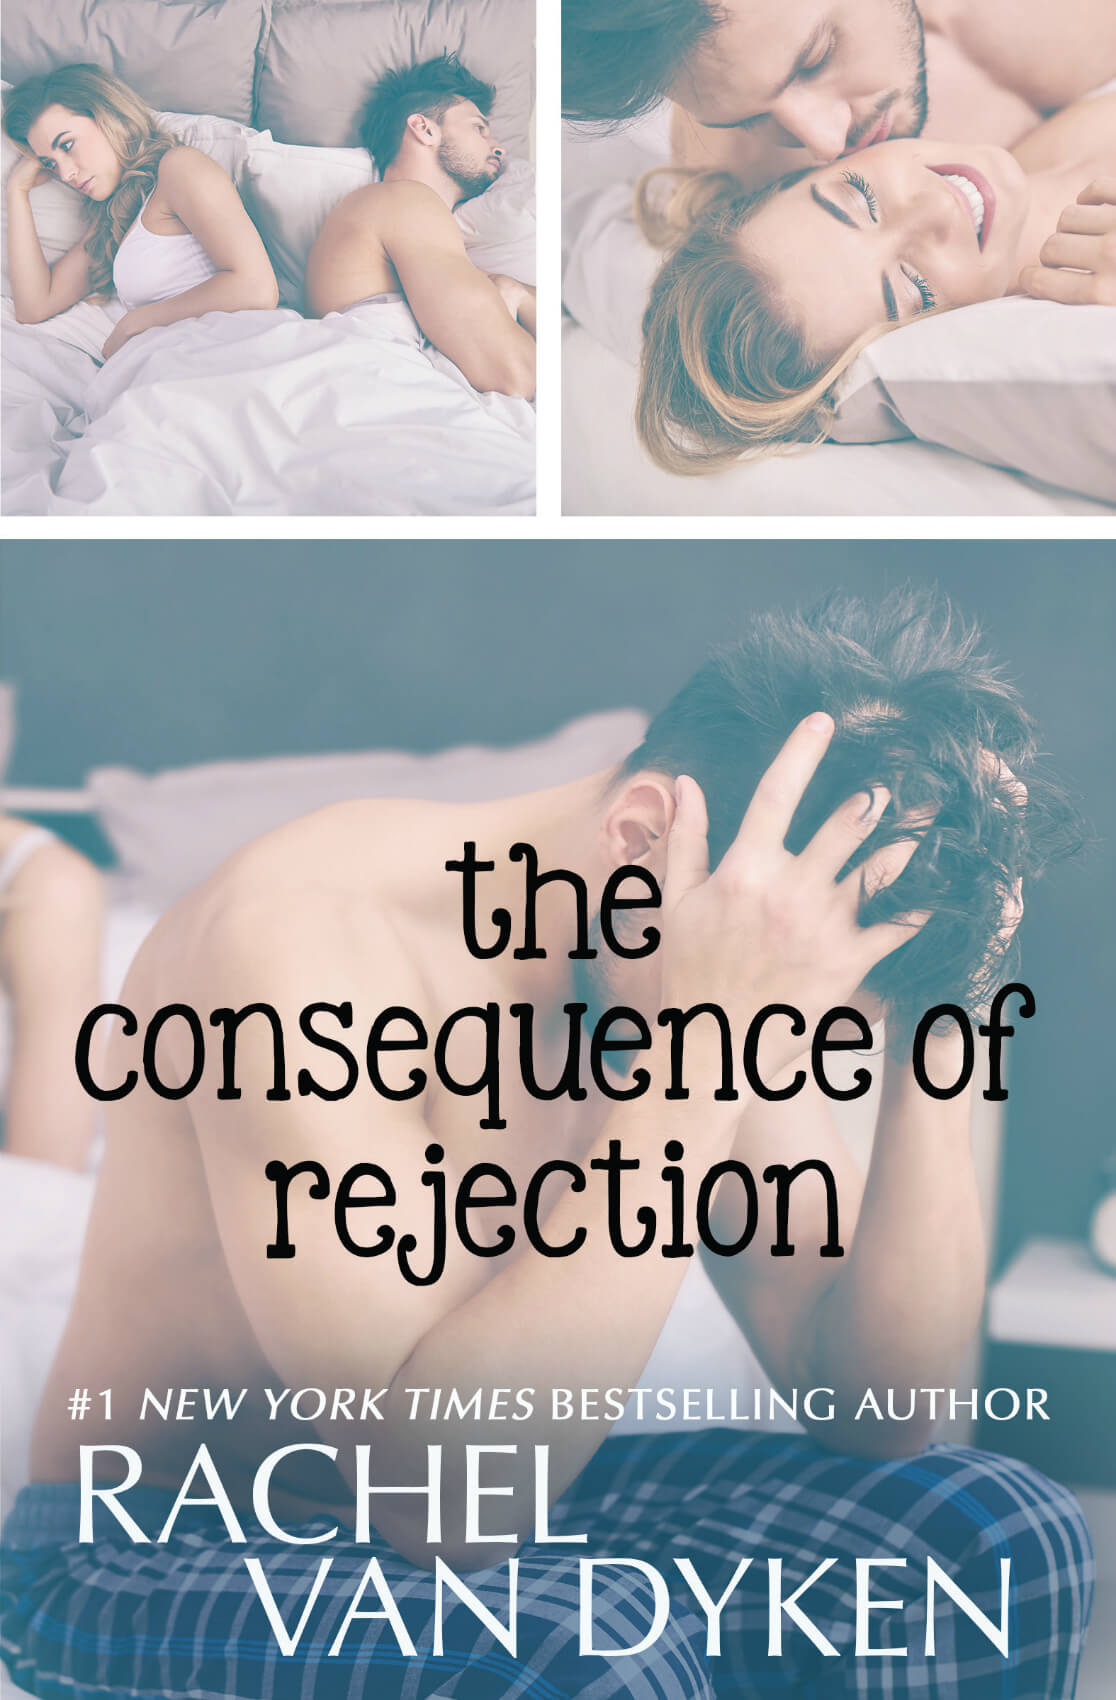 The Consequence of Rejection by Rachel Van Dyken @rachvd